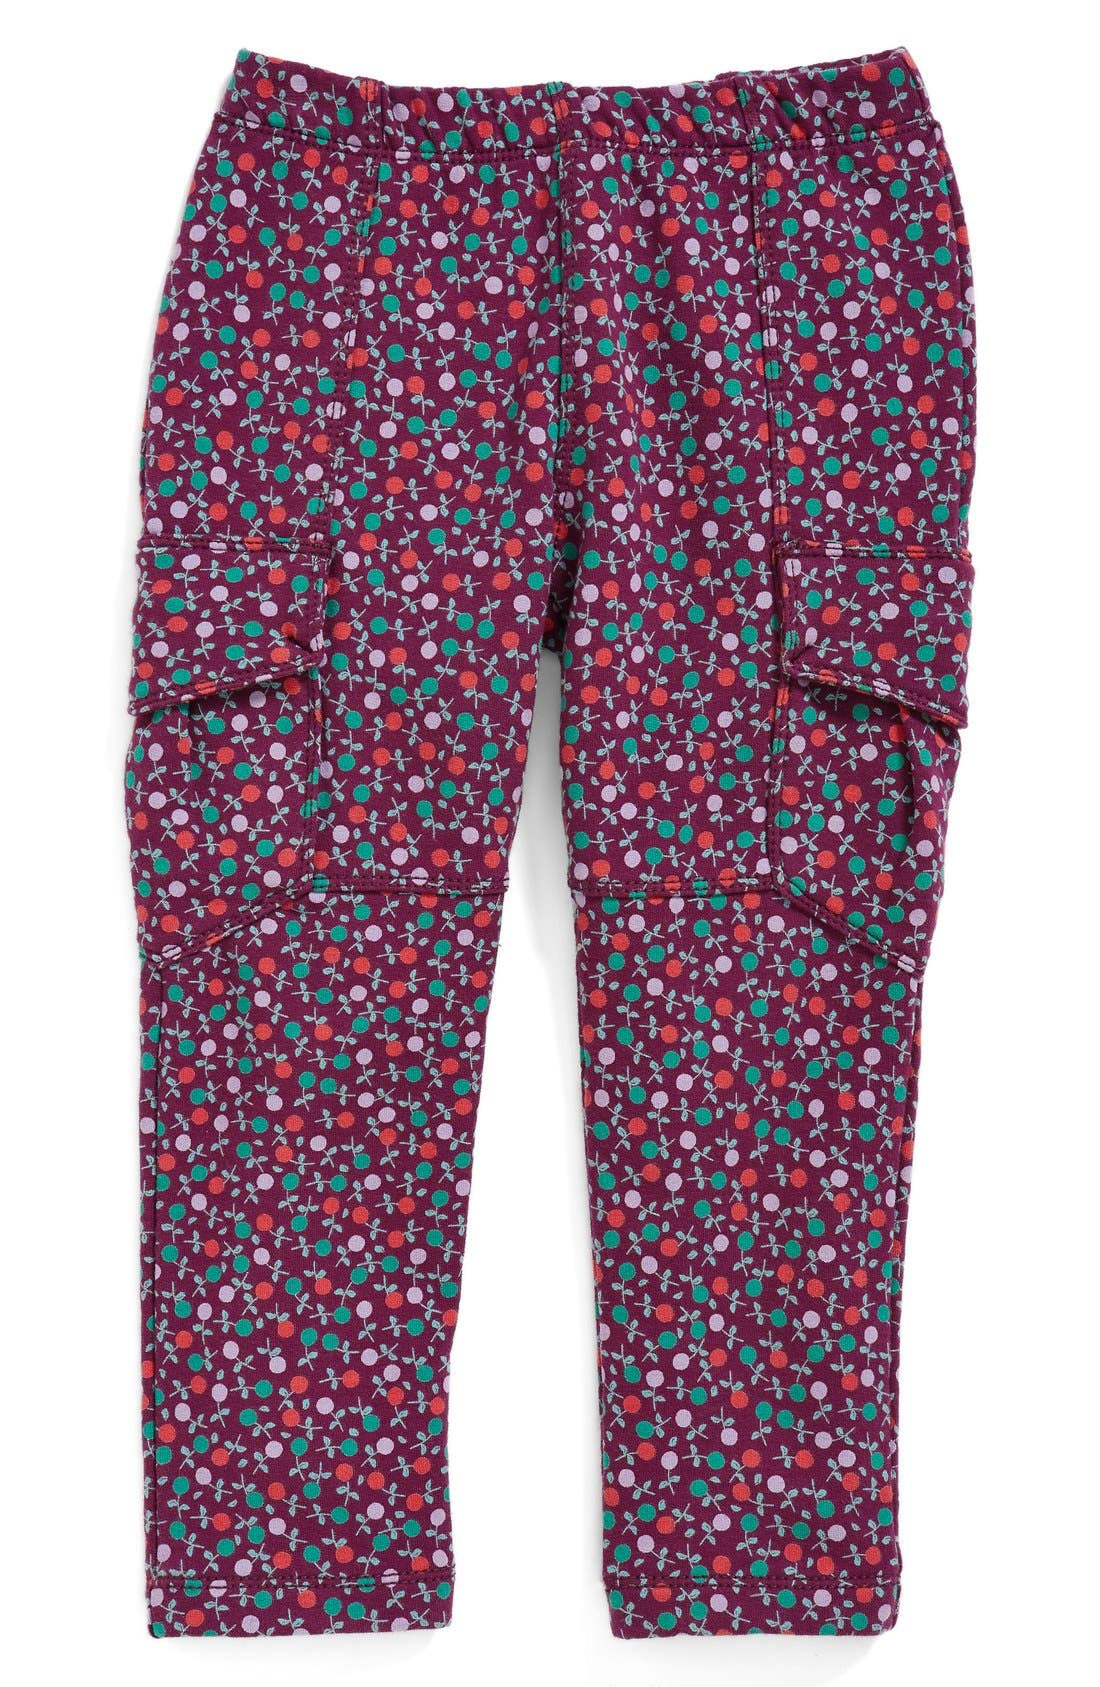 Alternate Image 1 Selected - Tea Collection 'Blumen' French Terry Cargo Pants (Baby Girls)